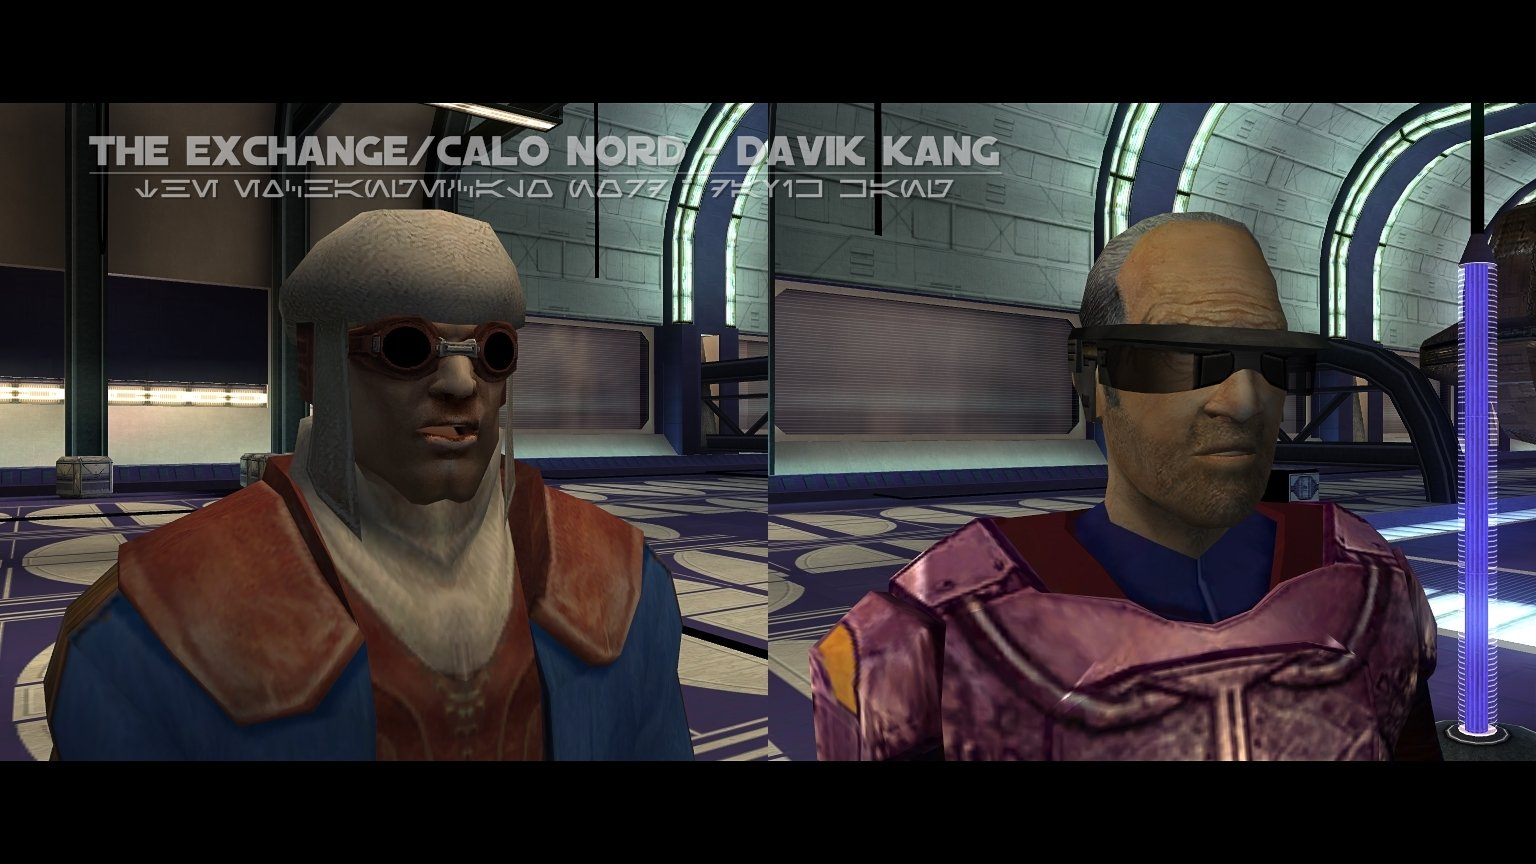 The Exchange: Calo Nord - Davik Kang